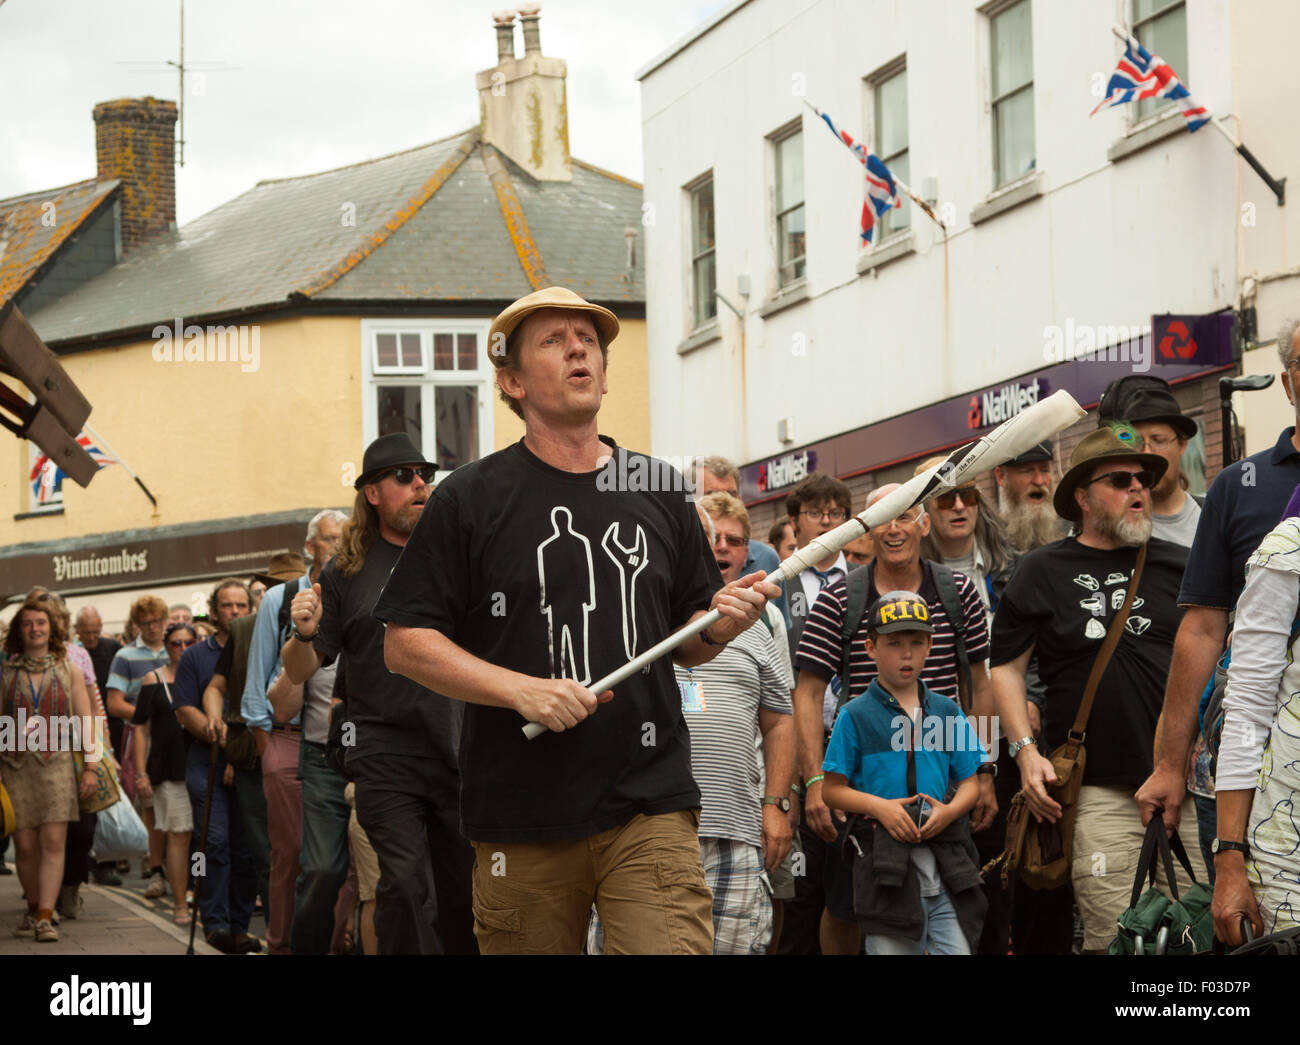 Spooky Men's Chorale flashmob Sidmouth town centre on the penultimate day of Folk Week festival, 2015 - Stock Image